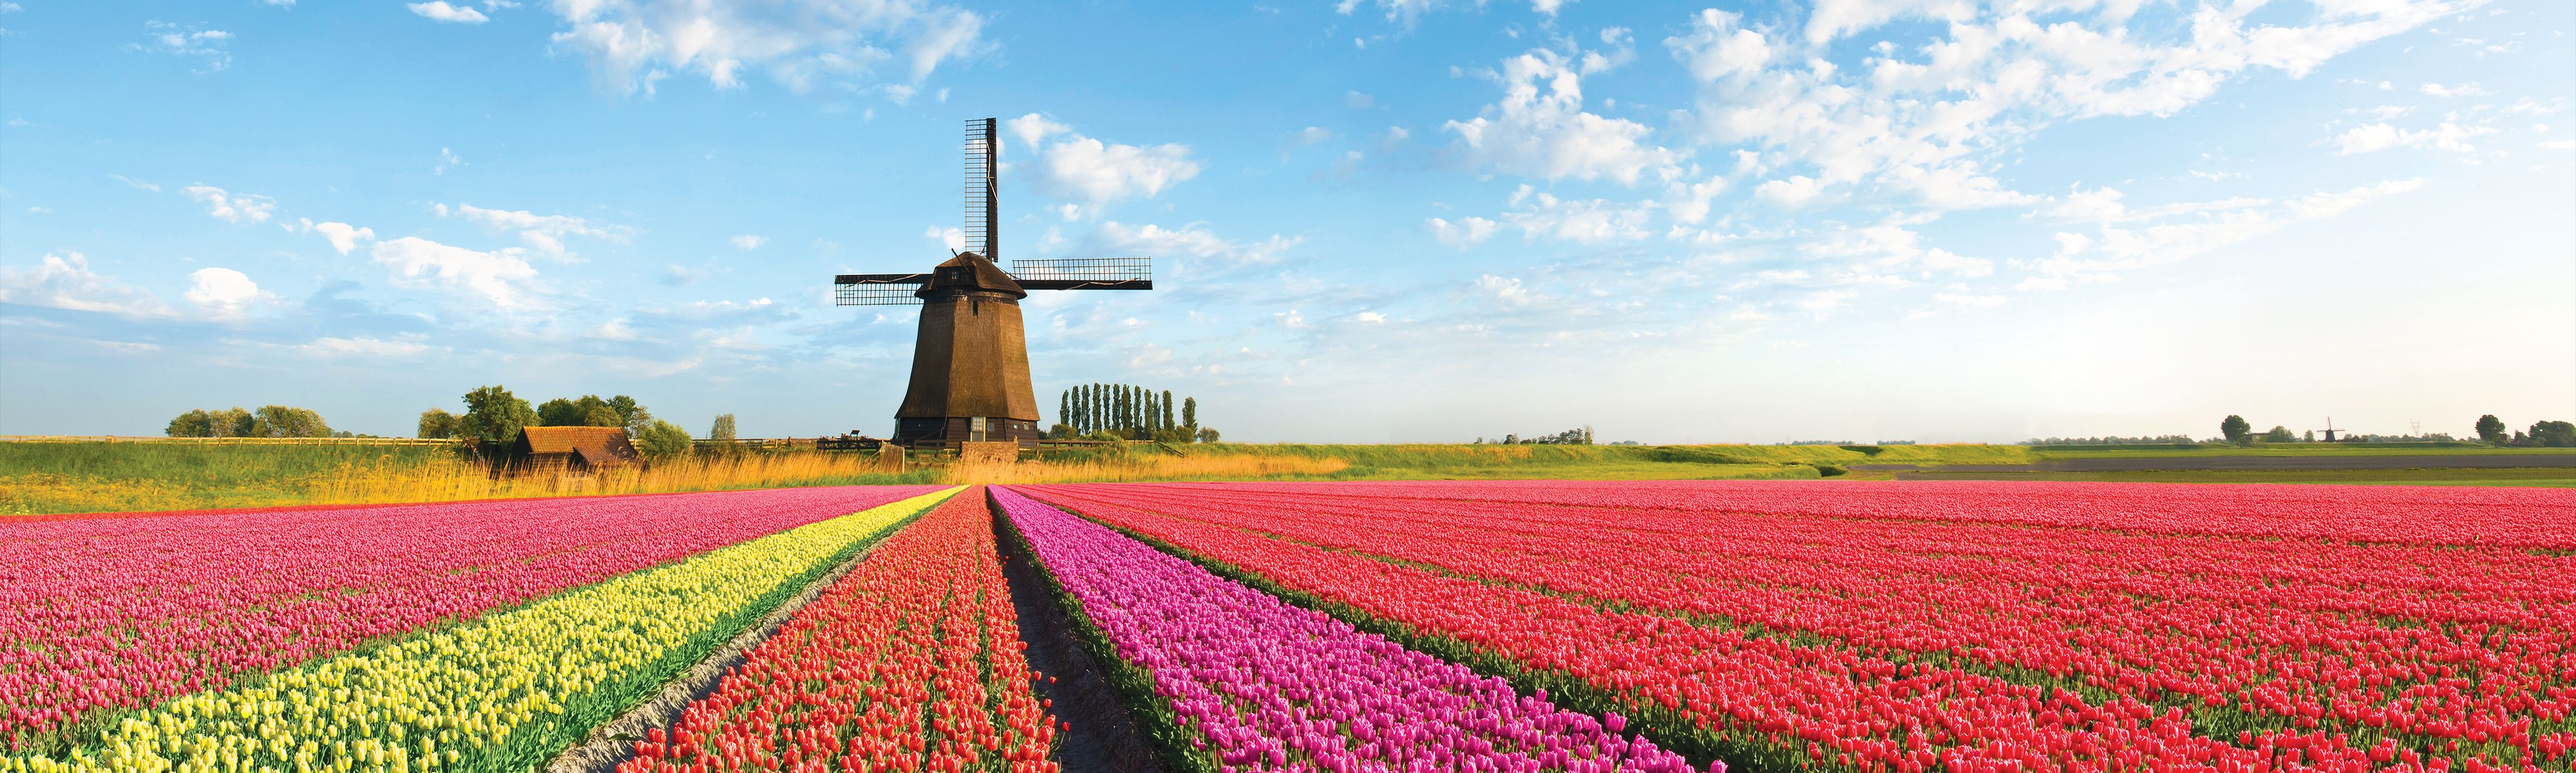 landscape of bouquet of colorful tulips and windmills in netherlands